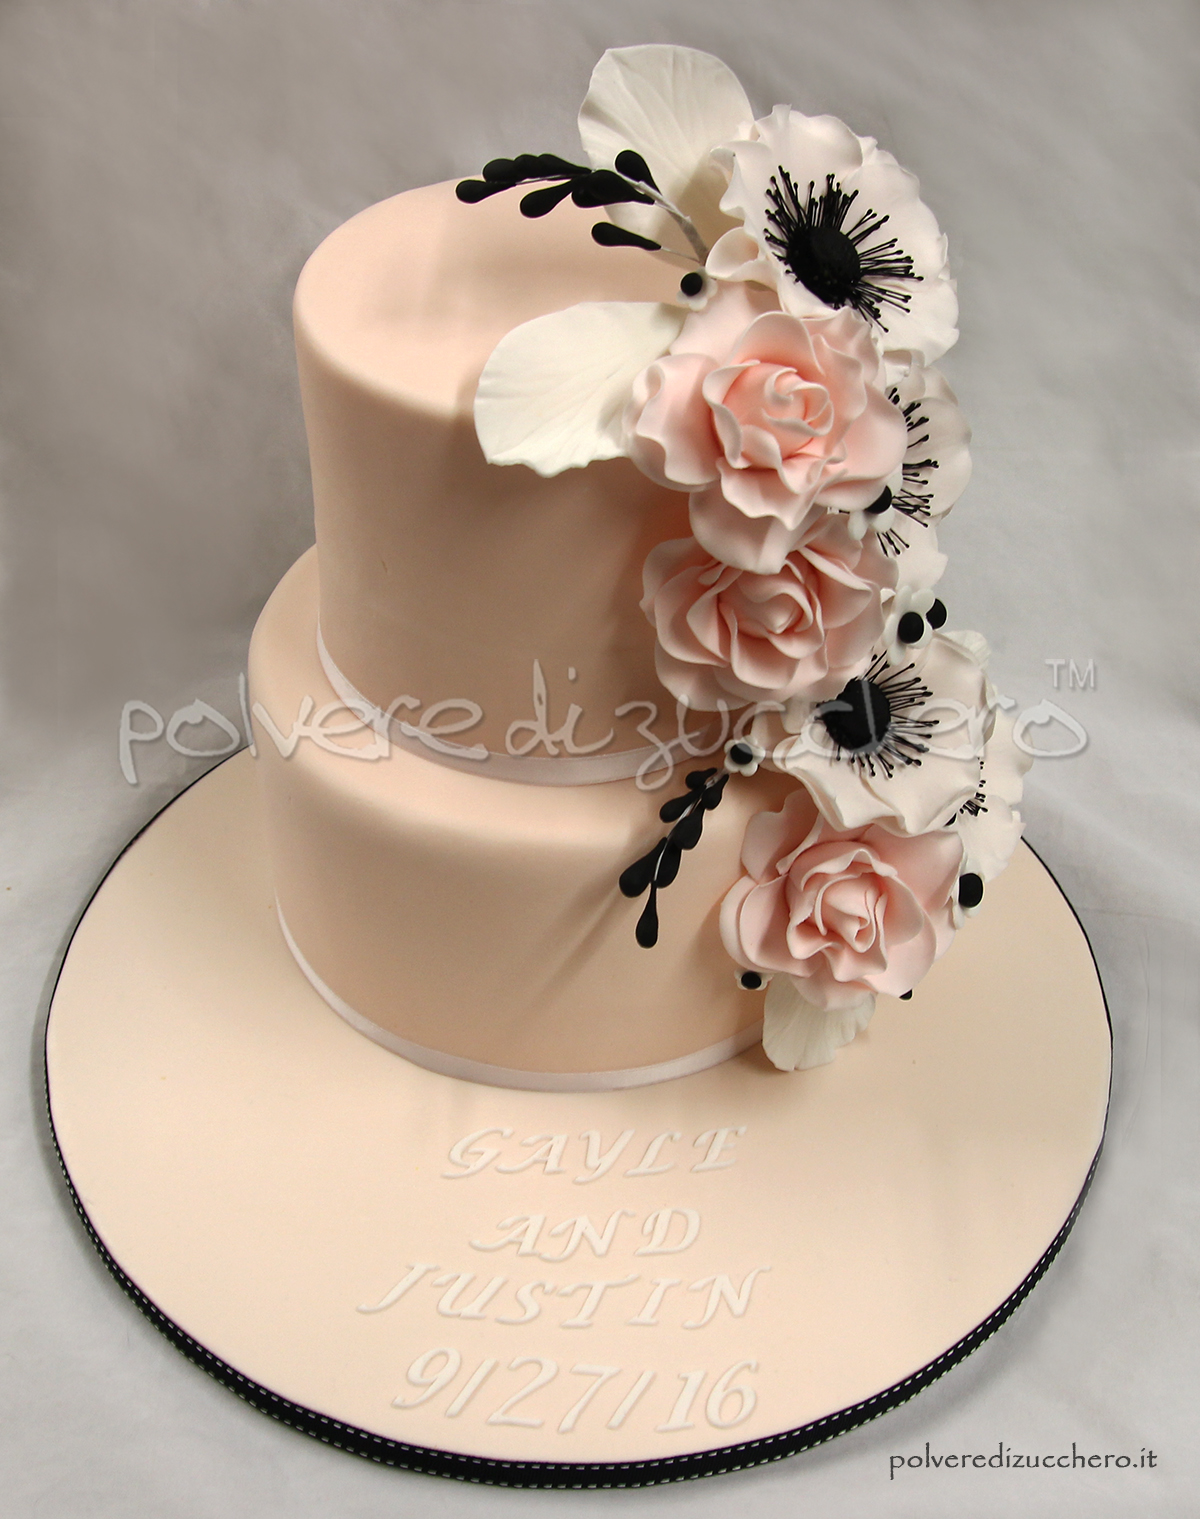 Wedding cake: torta nuziale con rose ed anemoni in pasta ...